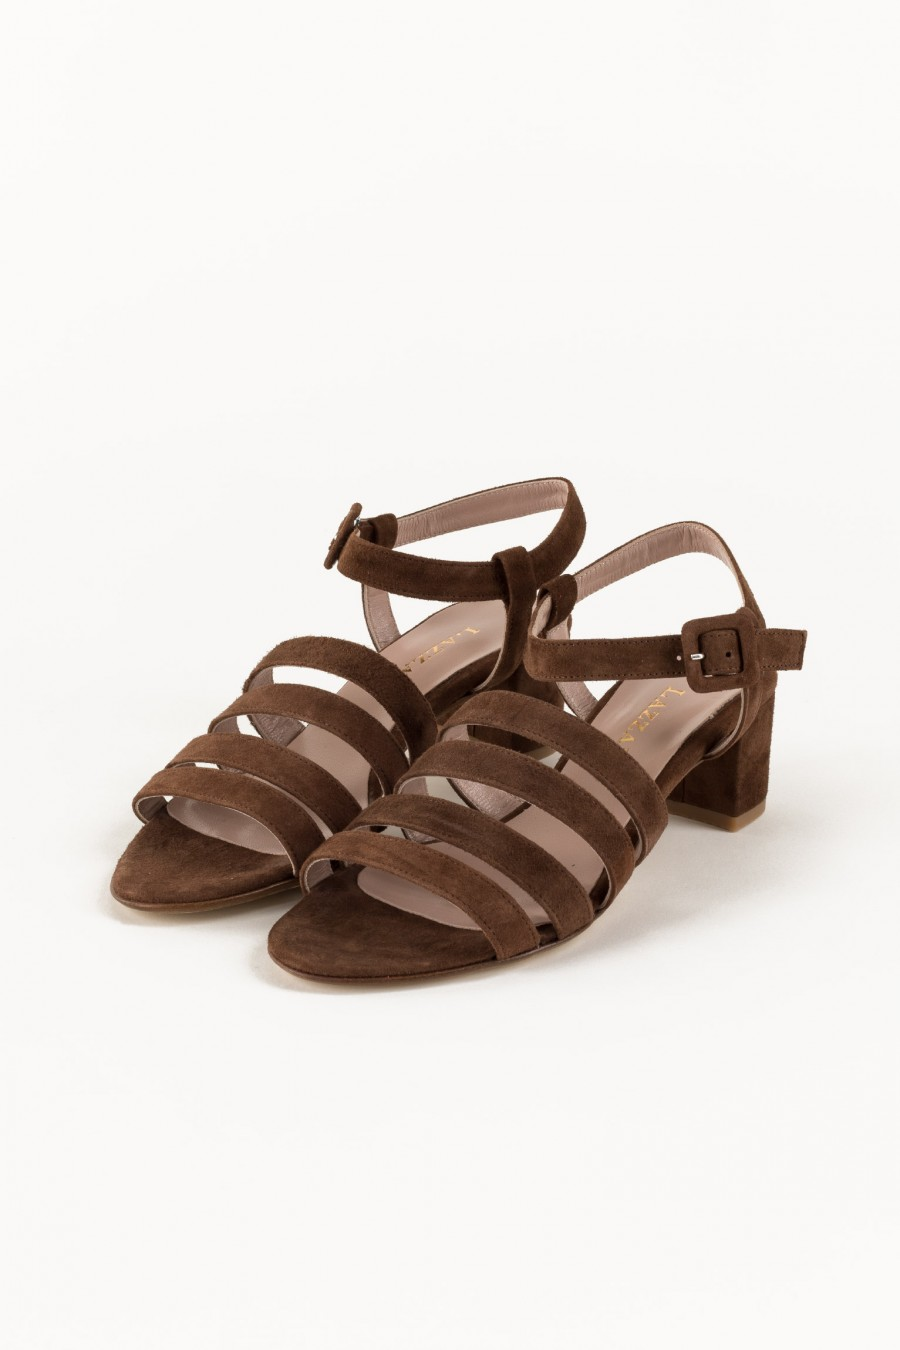 Suede brown sandals